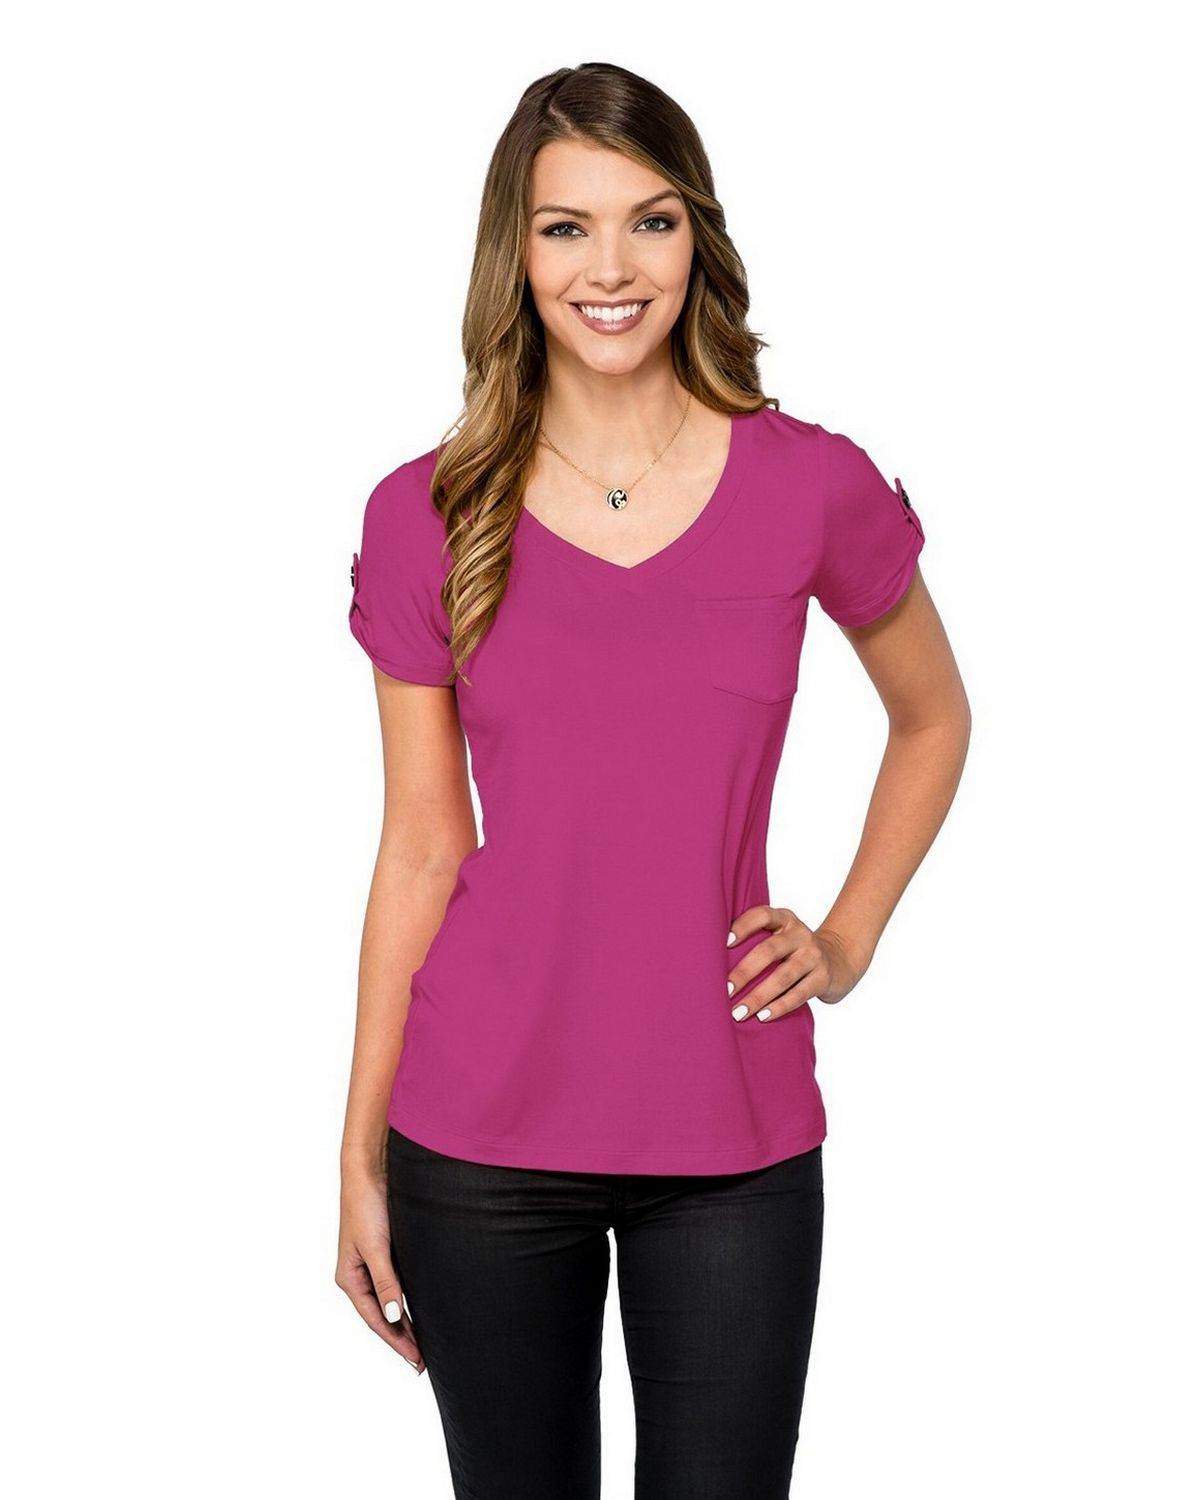 Lilac Bloom LB002 Chloe Pocket Tee - Berry - XS LB002